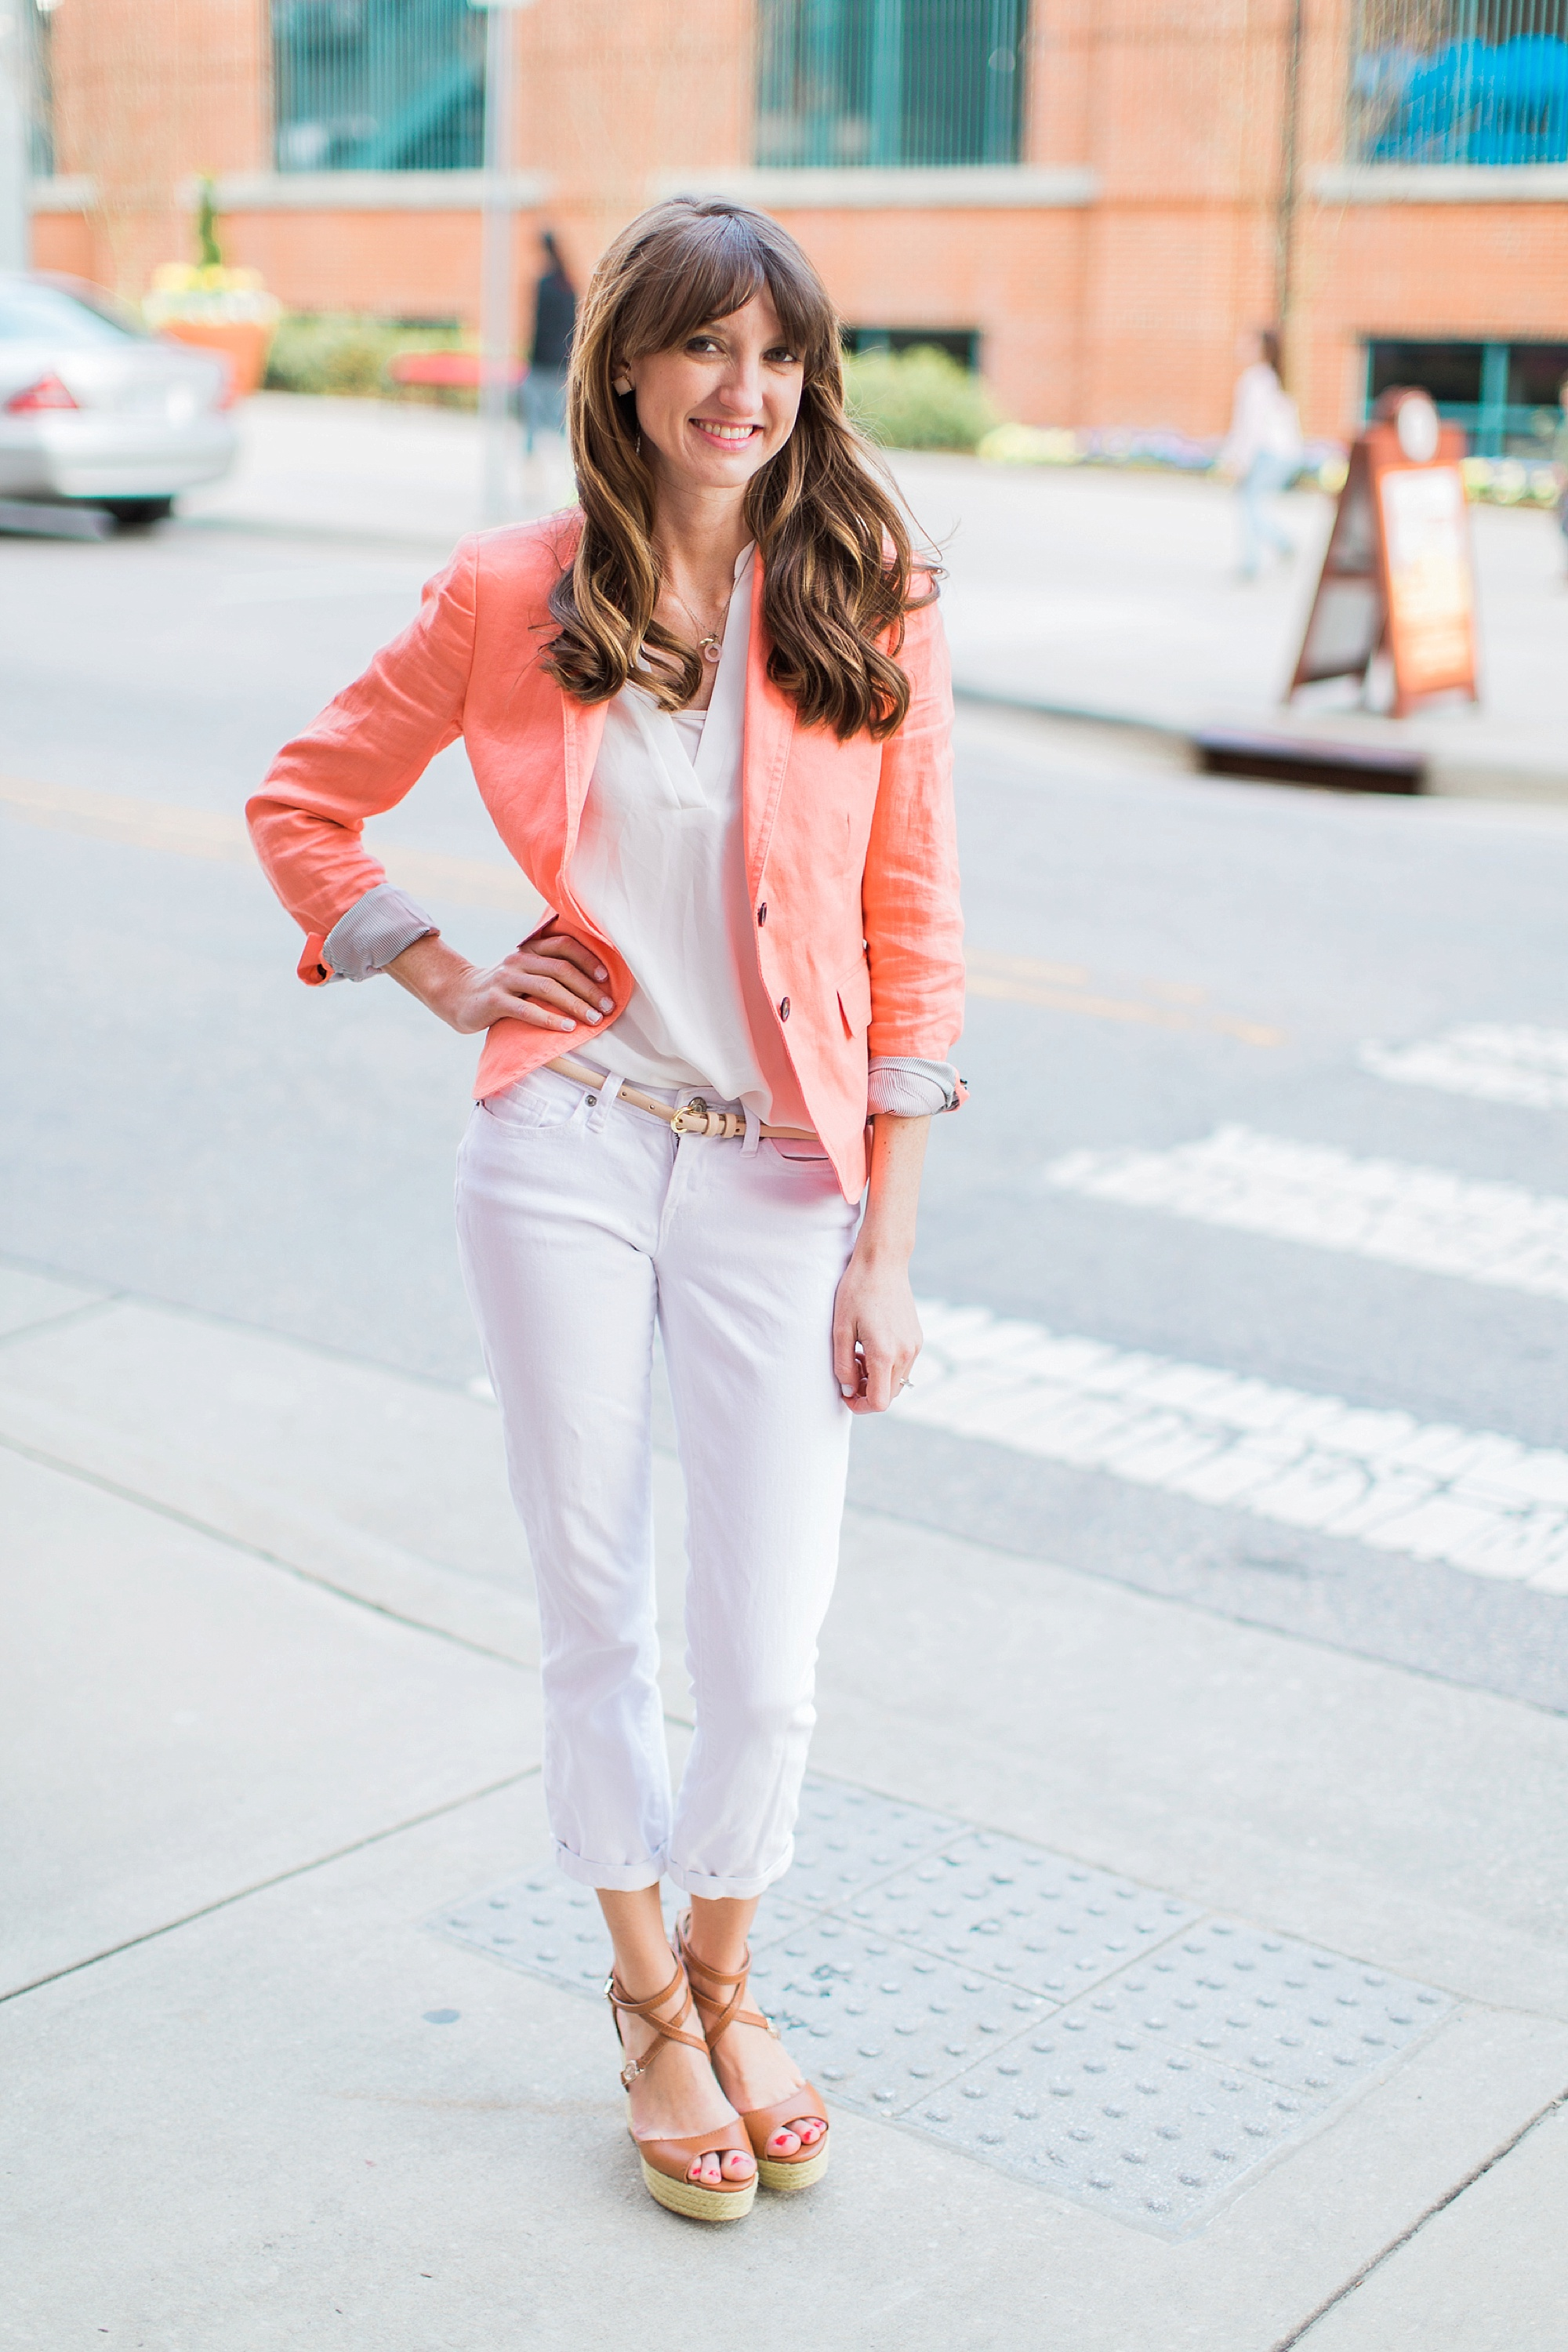 """Blazer: J Crew Factory (Similar   here   and   here  ); Tunic: Lush (  Same  in """"ivory""""); Jeans: Gap (  Similar  ...I plan on purchasing these soon!); Shoes: Sam Edelman (  Same  and on sale!); Earrings: BP (  Similar  )"""